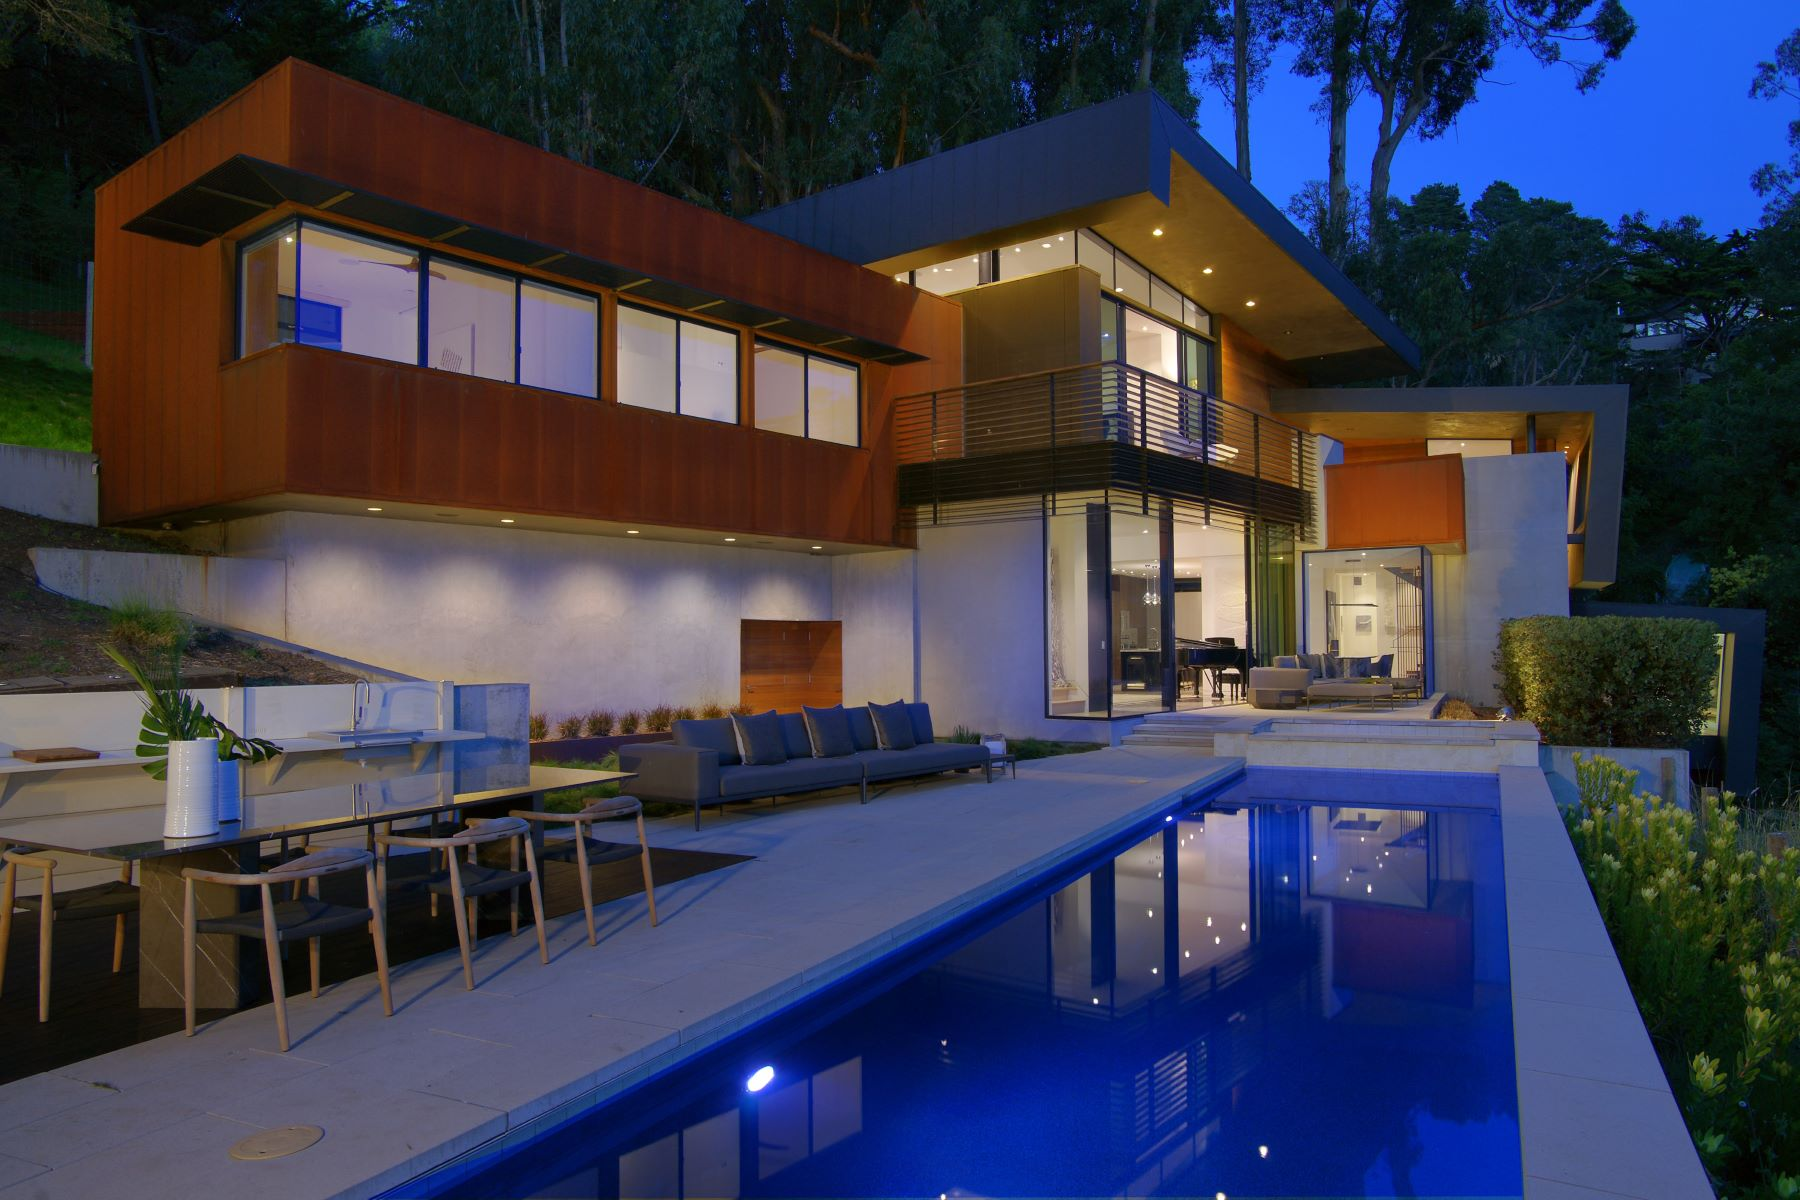 Single Family Homes のために 売買 アット The Best of Mill Valley 432 Lovell Ave, Mill Valley, カリフォルニア 94941 アメリカ